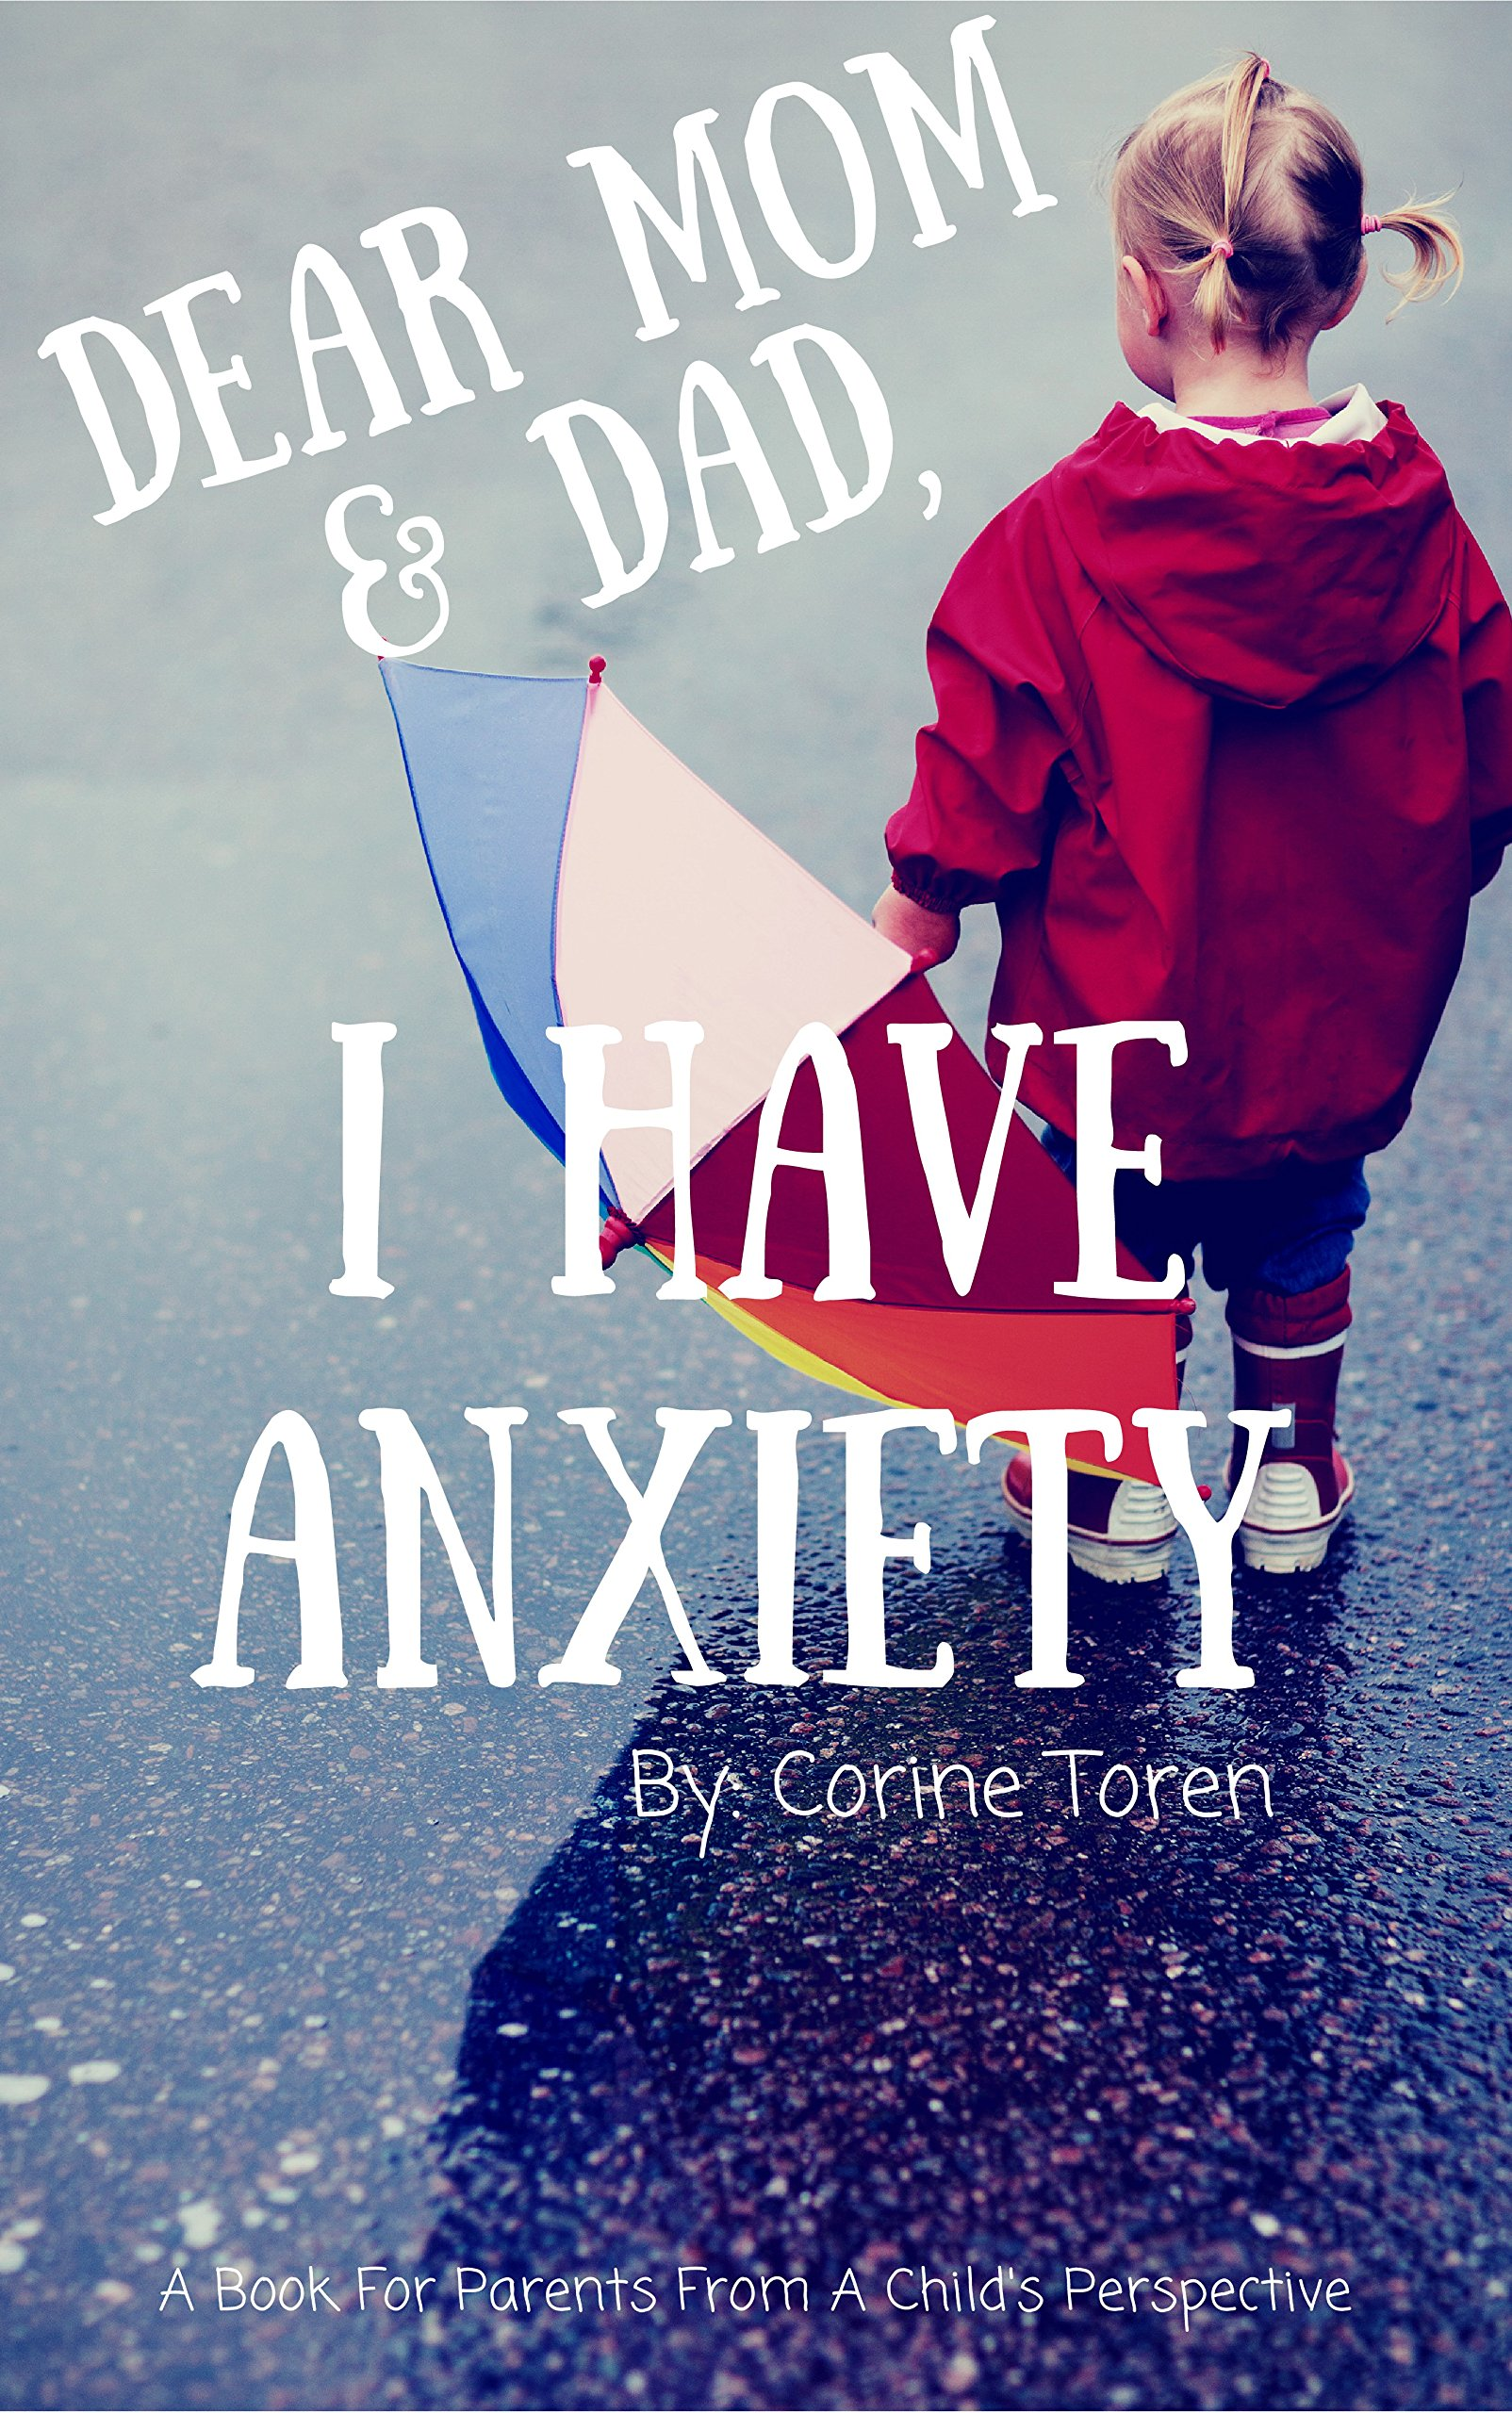 Image OfDear Mom & Dad, I Have Anxiety: A Book For Parents From A Child's Perspective